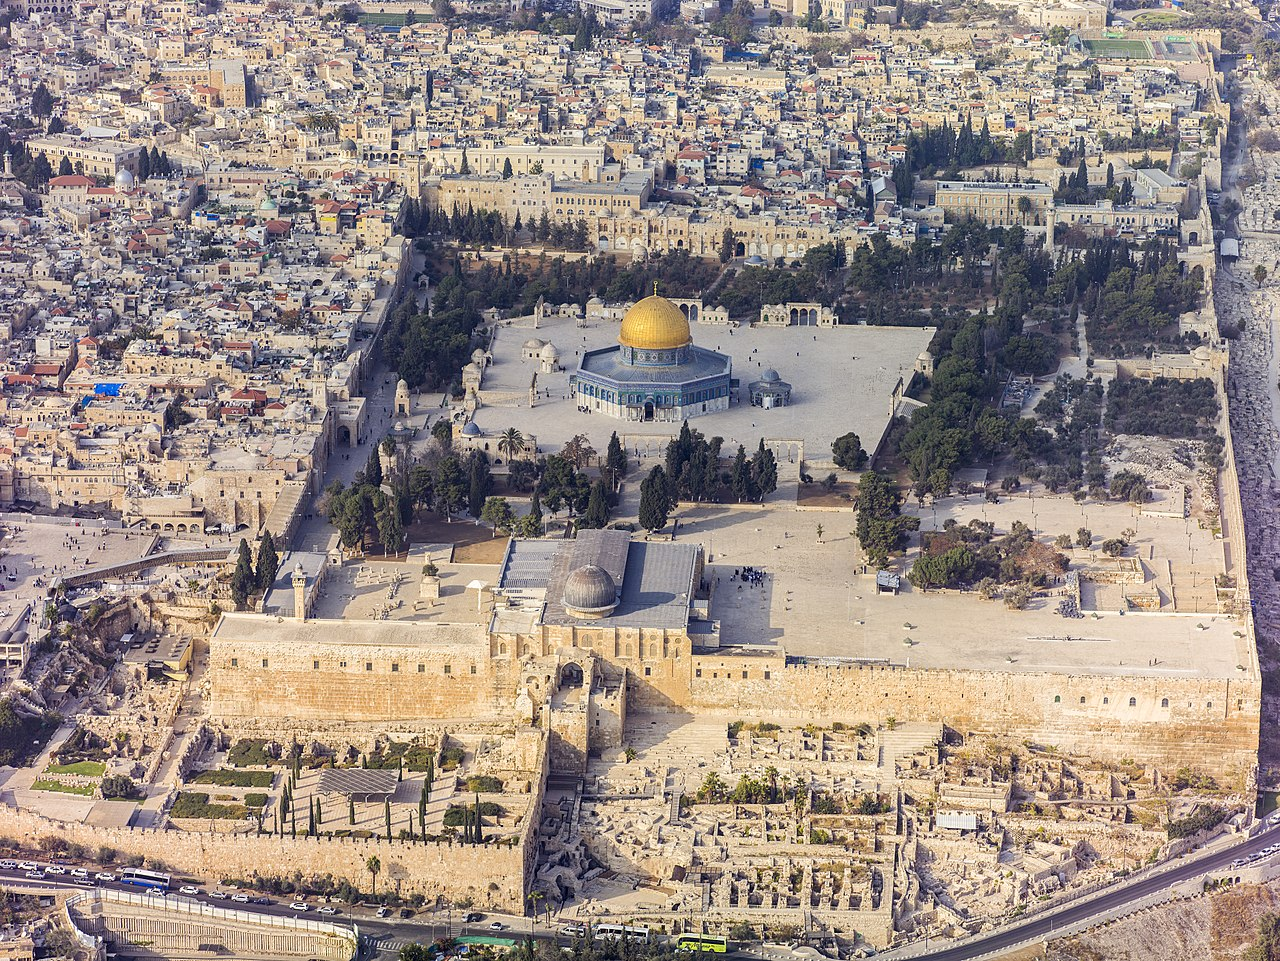 (foto by: Andrew Shiva; license CC-BY-SA 4.0) 1280px Israel 20132 Aerial Jerusalem Temple Mount Temple Mount south exposure